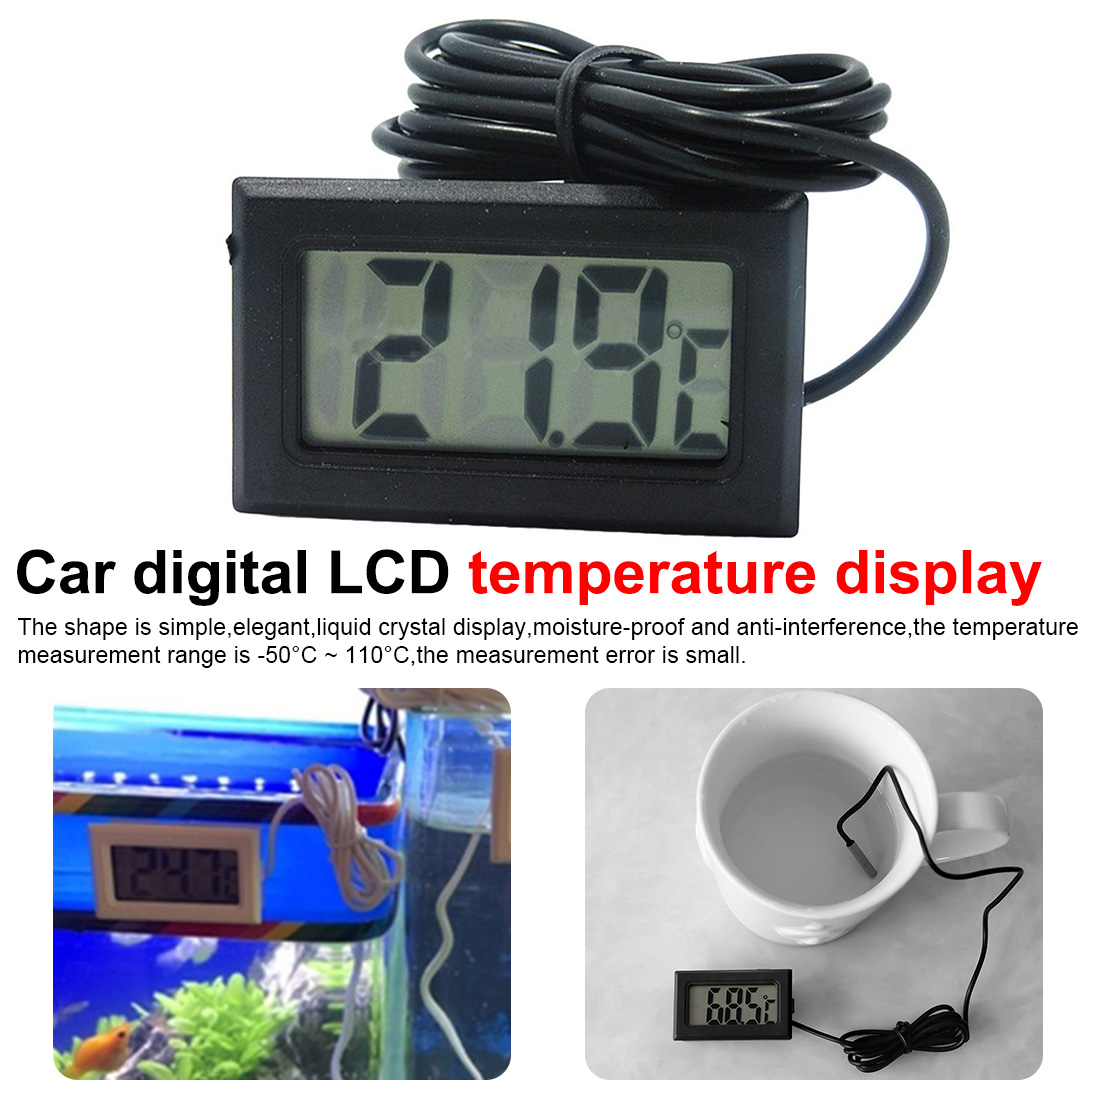 Car Digital LCD Display Temperature Sensor Car Ornaments Accessories Interior Temperature Meter Tools -50-110℃